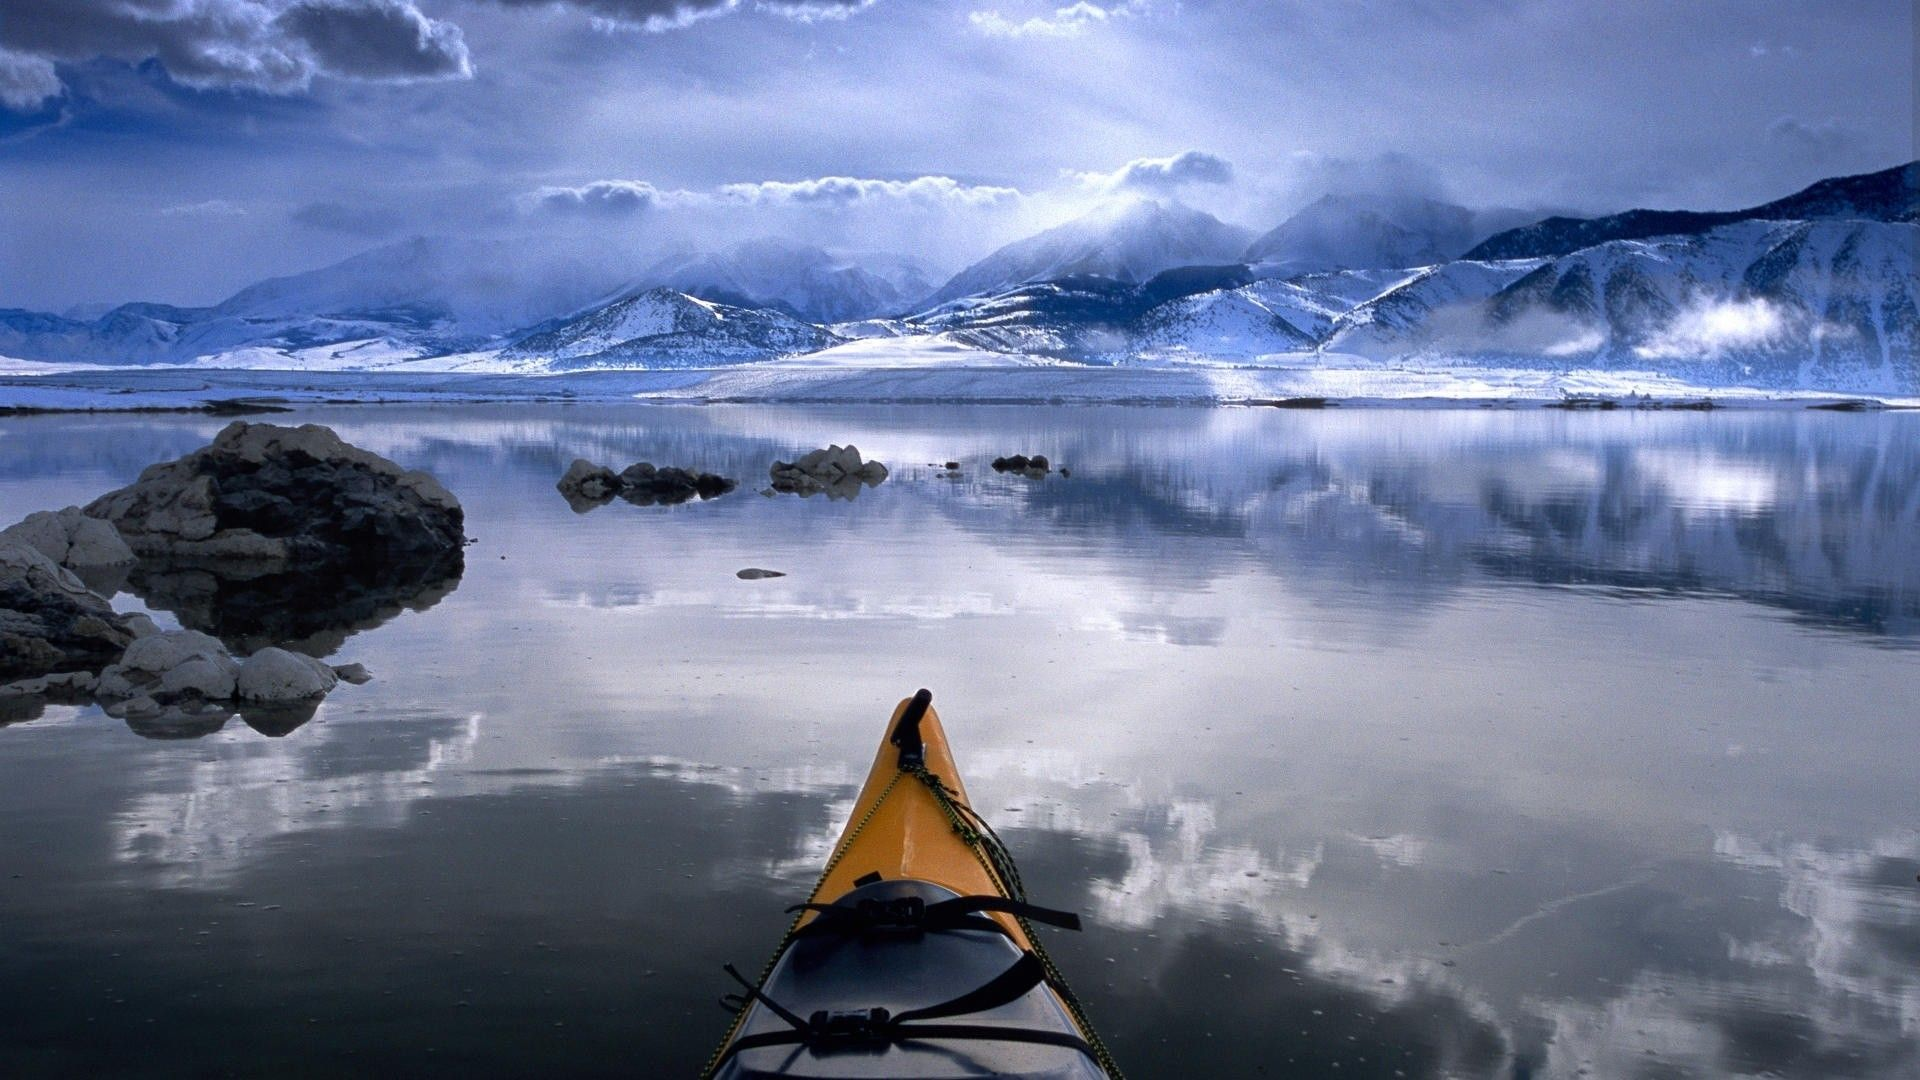 Kayak wallpaper picture hd